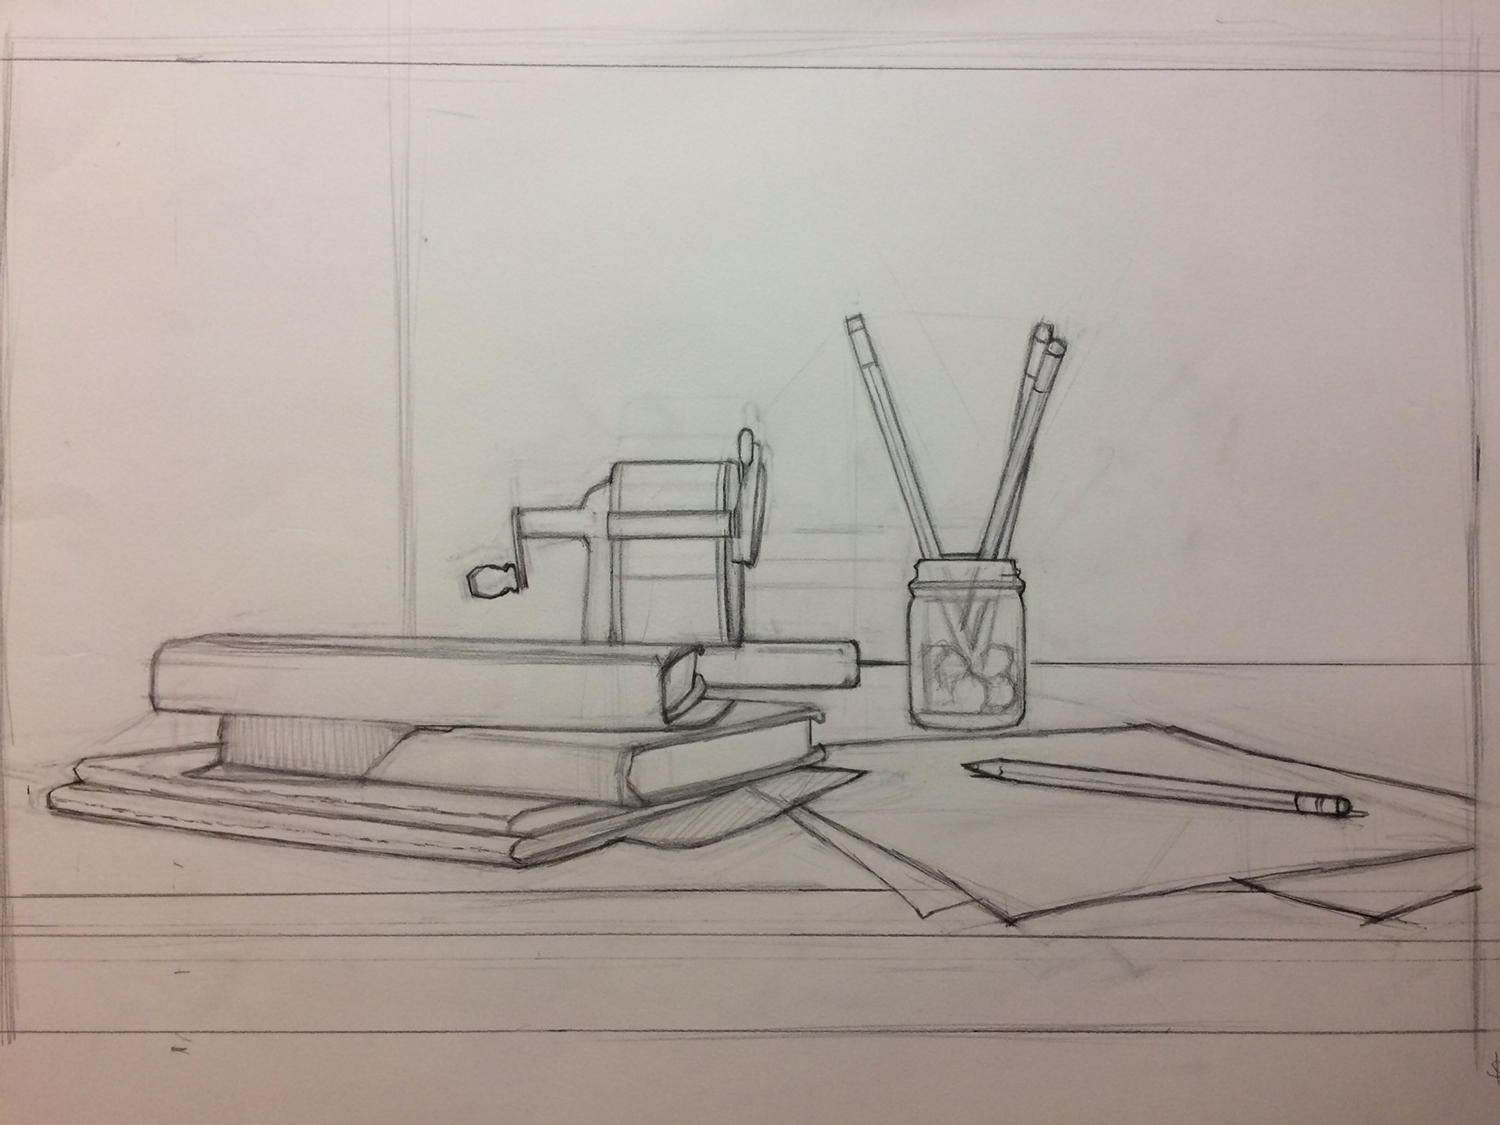 STILL LIFE DRAWING - 5 Days: 9 am - 12 pmInstructor: Danny GrantStill Life Drawing is a chance for young artists to create compelling pictures using the building blocks of composition, value, and form.